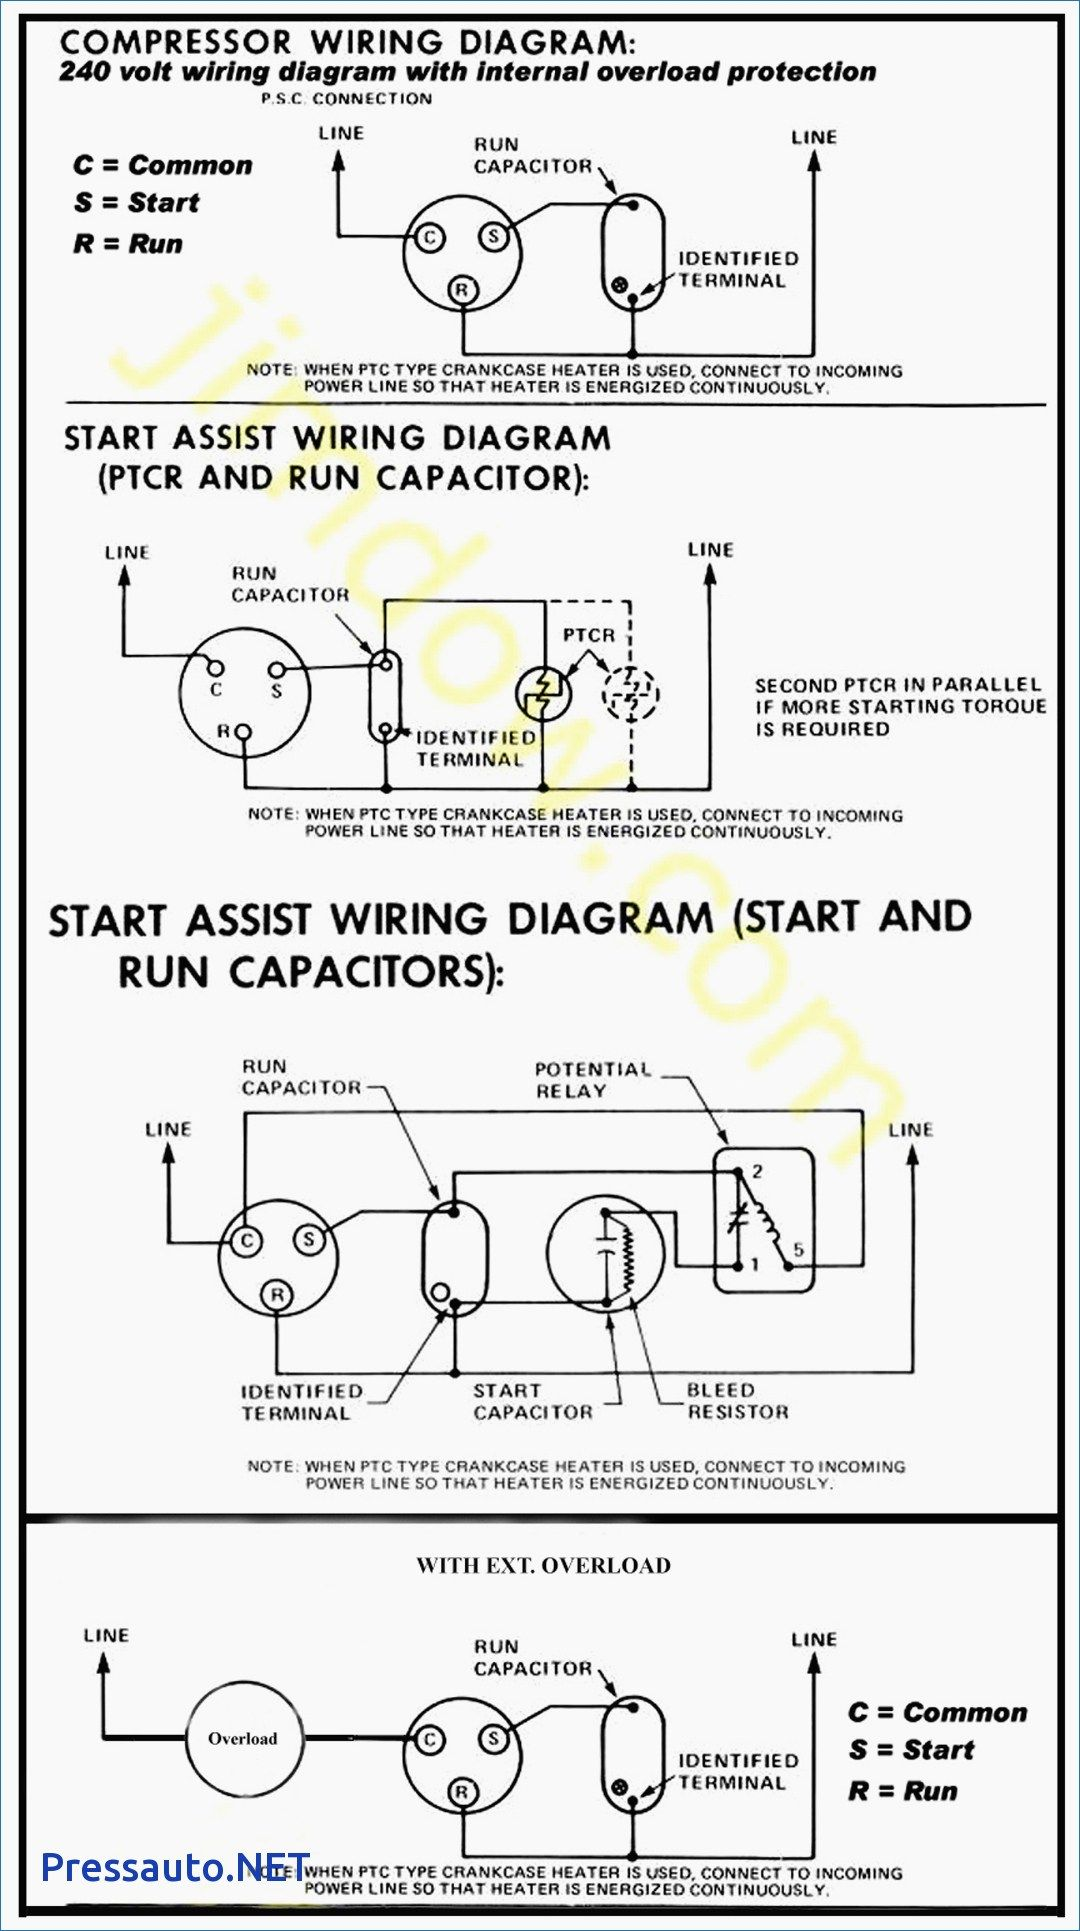 hard start capacitor wiring diagram throughout starting got it now rh pinterest com